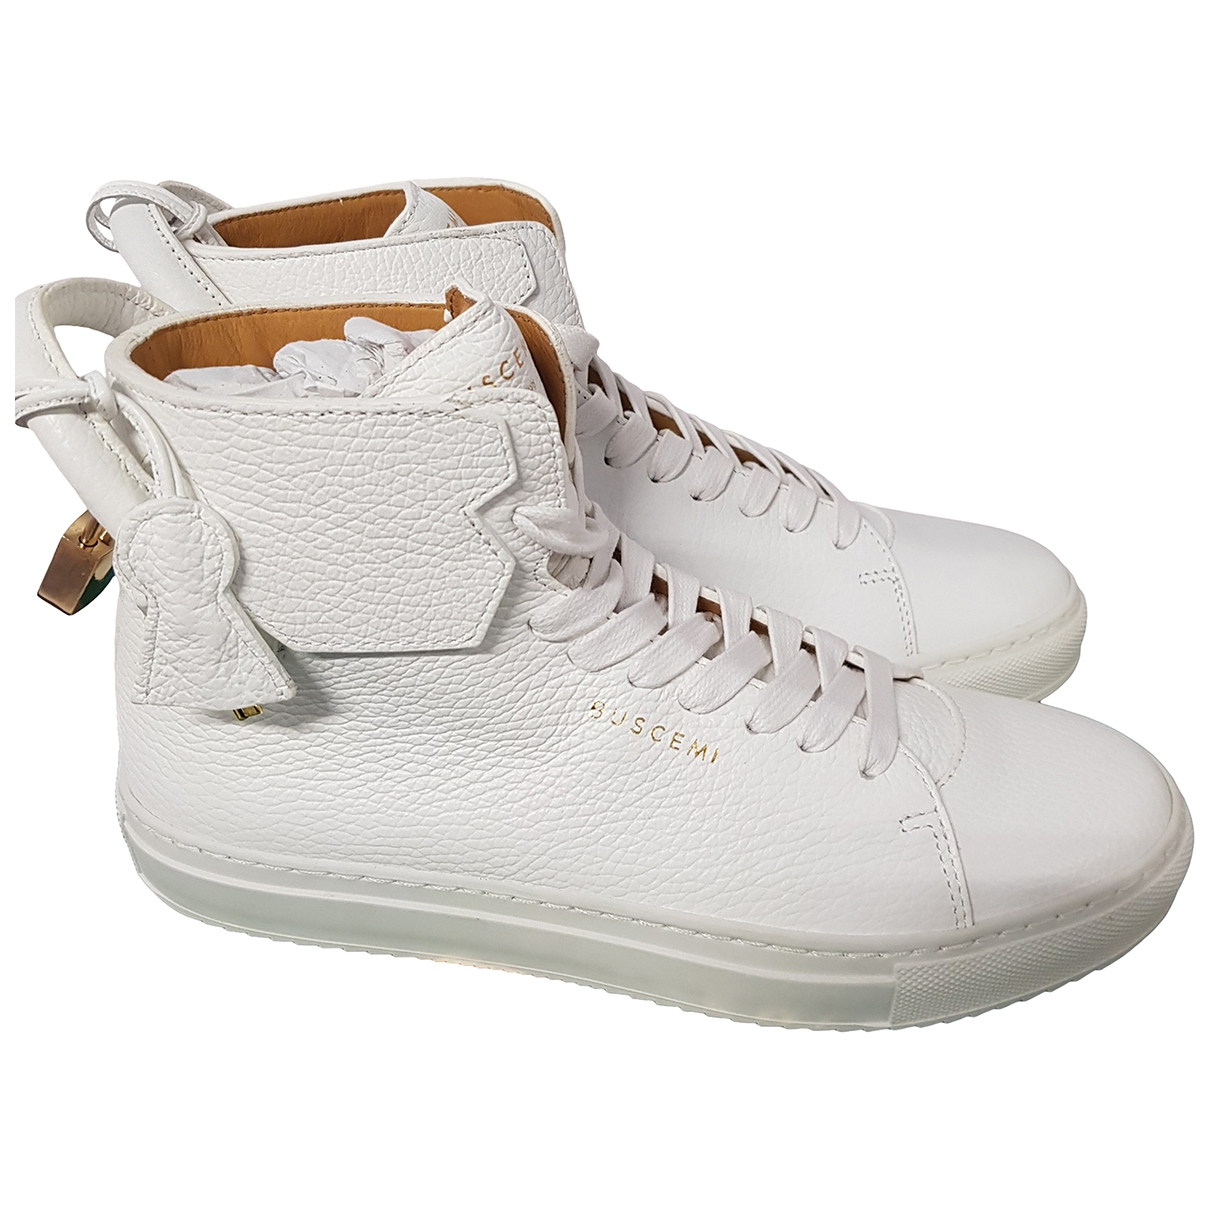 Buscemi \N White Leather Trainers for Women 40 EU